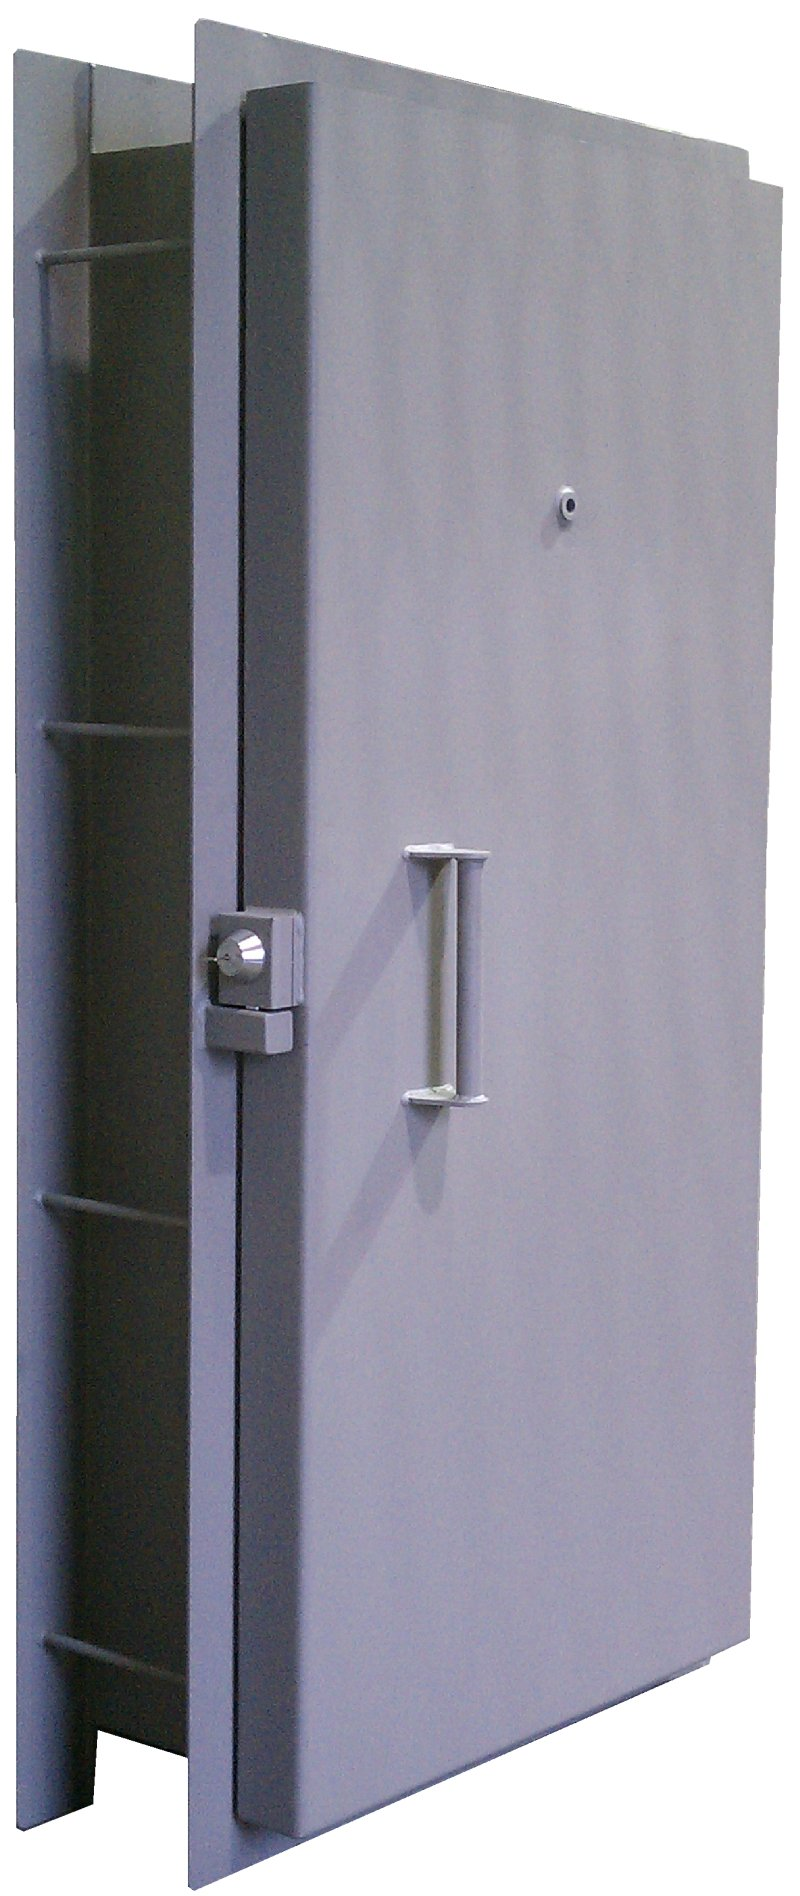 & Blast and Ballistic Doors from American Safe Room